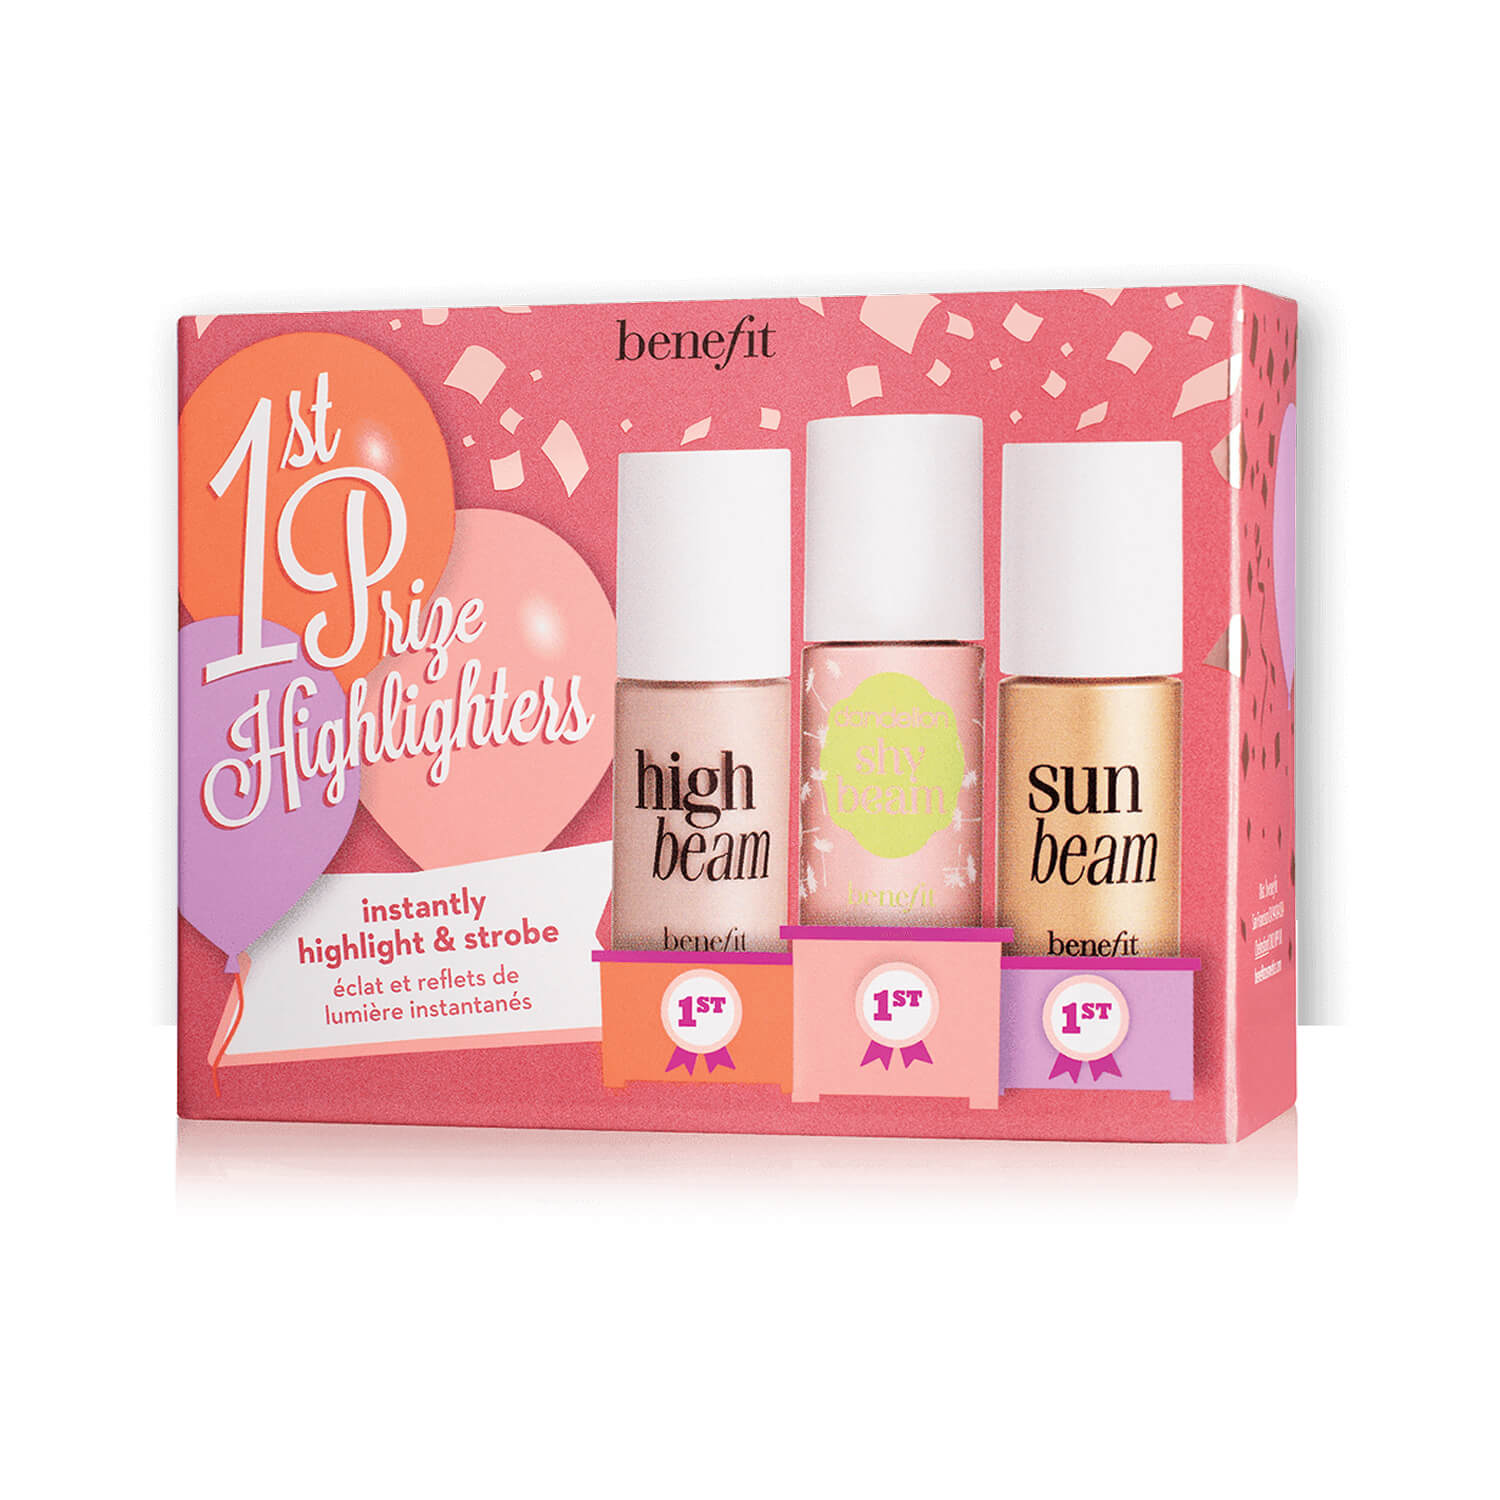 Benefit Cosmetics 1st Prize Highlighters Strobing Highlighting Set